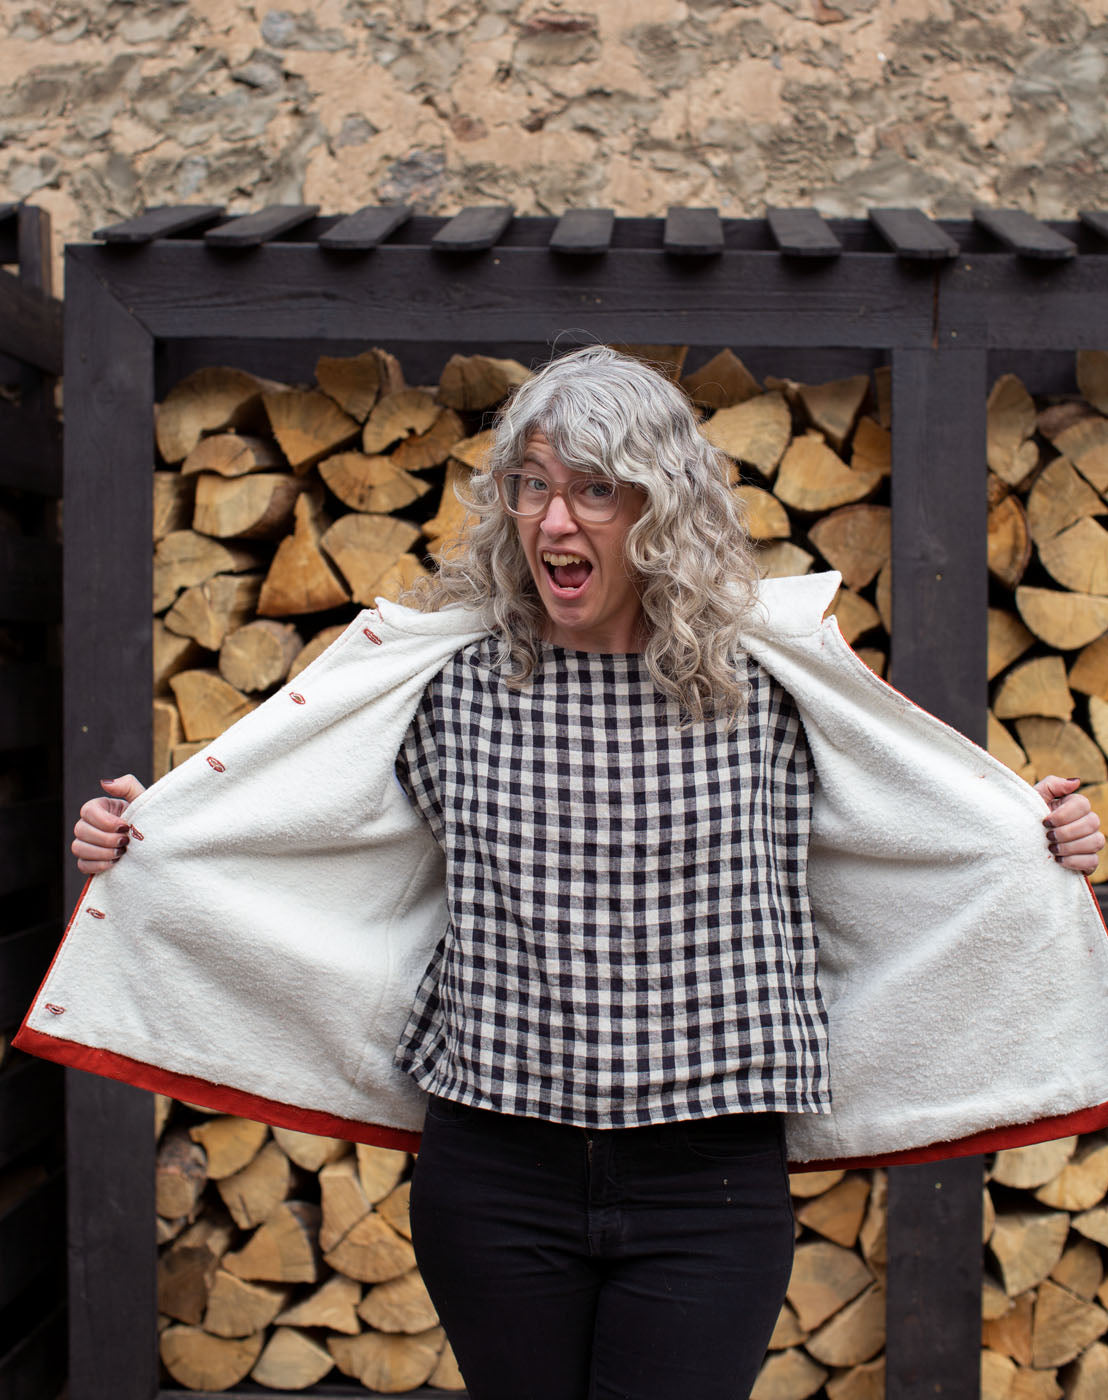 Jaime stands in front of a neatly stacked wall of firewood, holding her Thayer Jacket open to show off the inside. The jacket is lined with hemp/cotton sherpa.